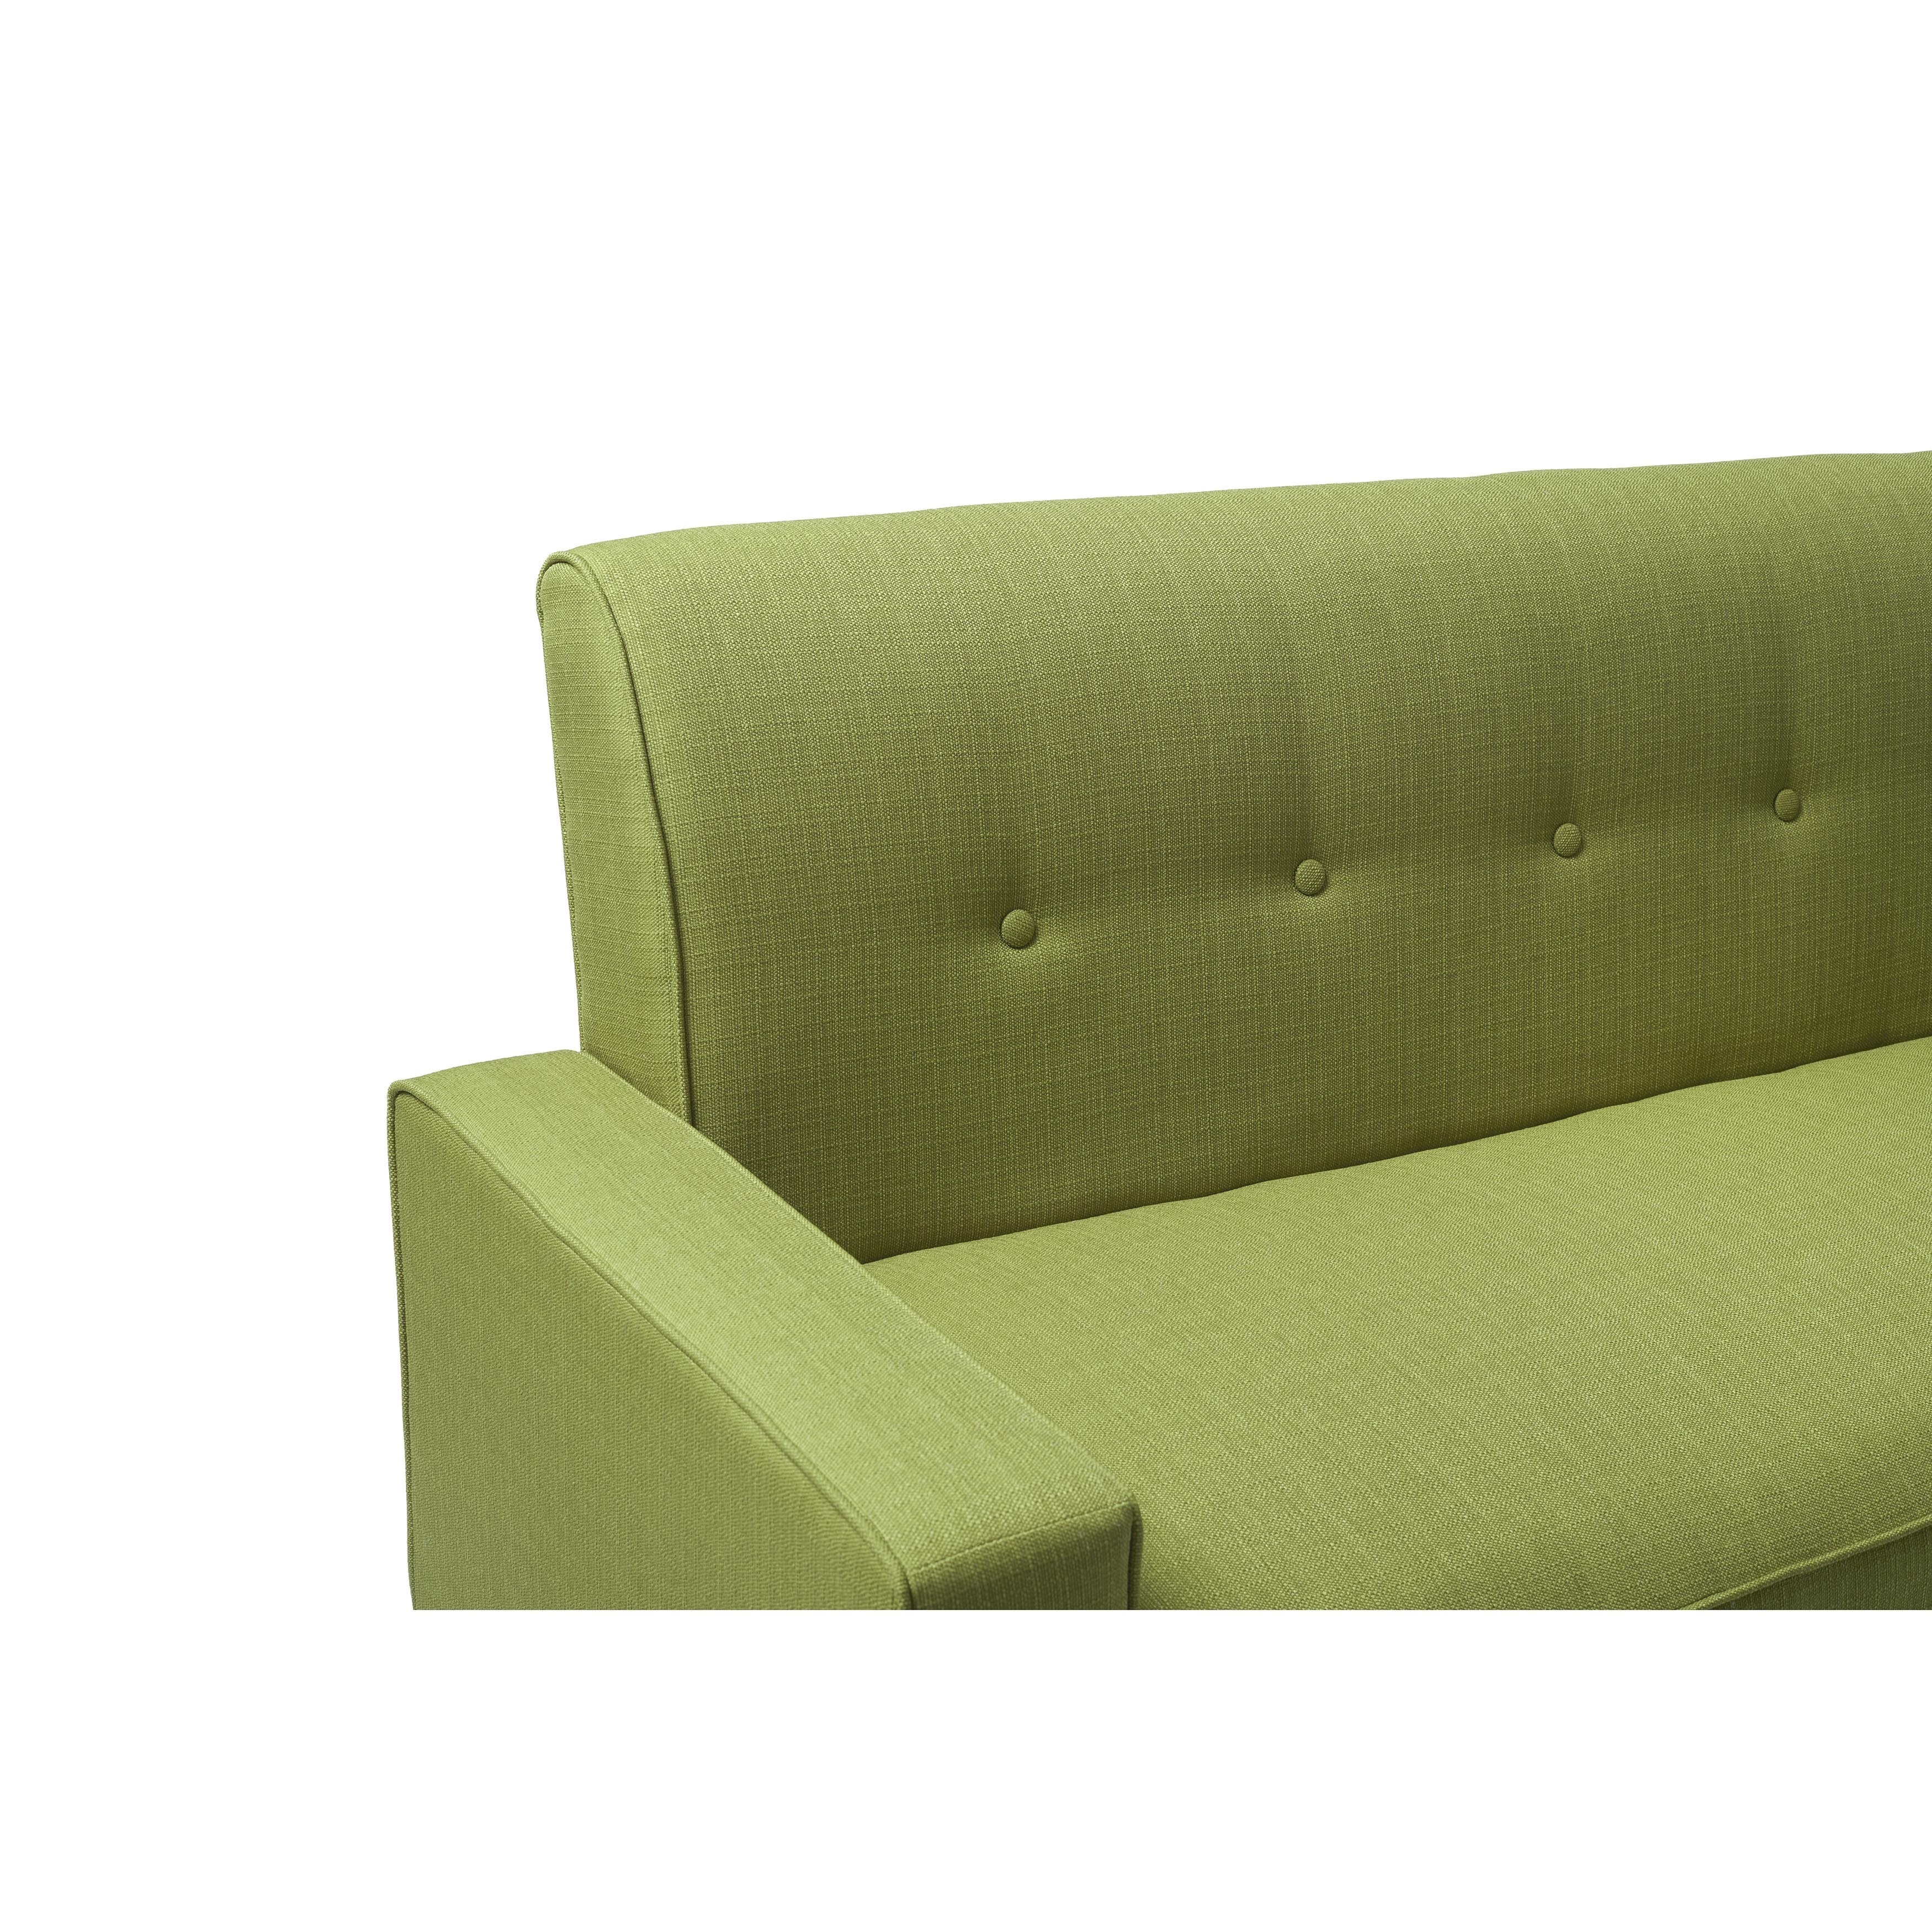 Handy Living Ellie Apple Green Linen Sofa Free Shipping Today